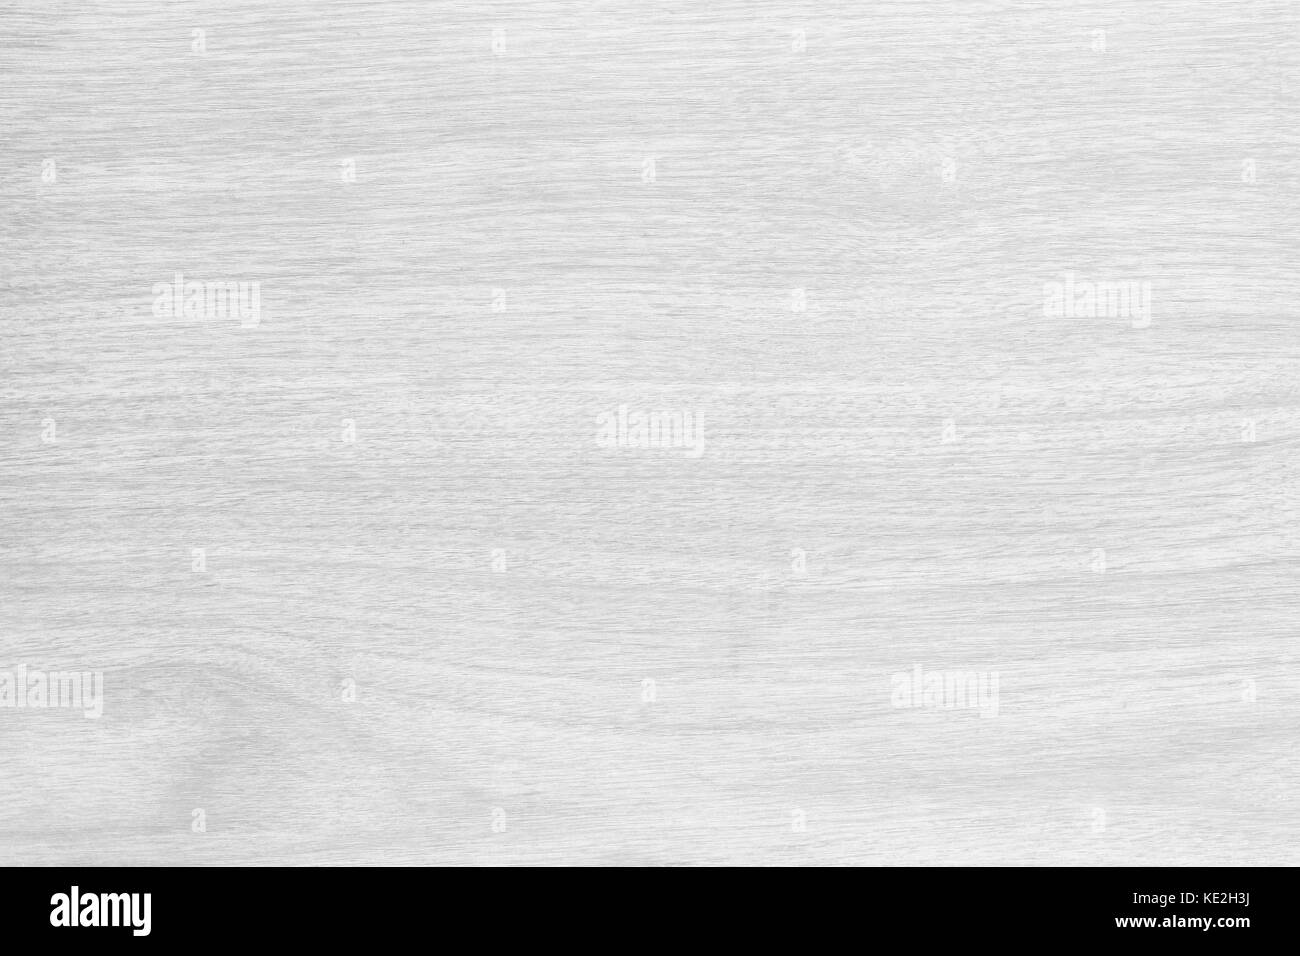 White wood table texture - Abstract Rustic Surface White Wood Table Texture Background Close Up Of Rustic Wall Made Of